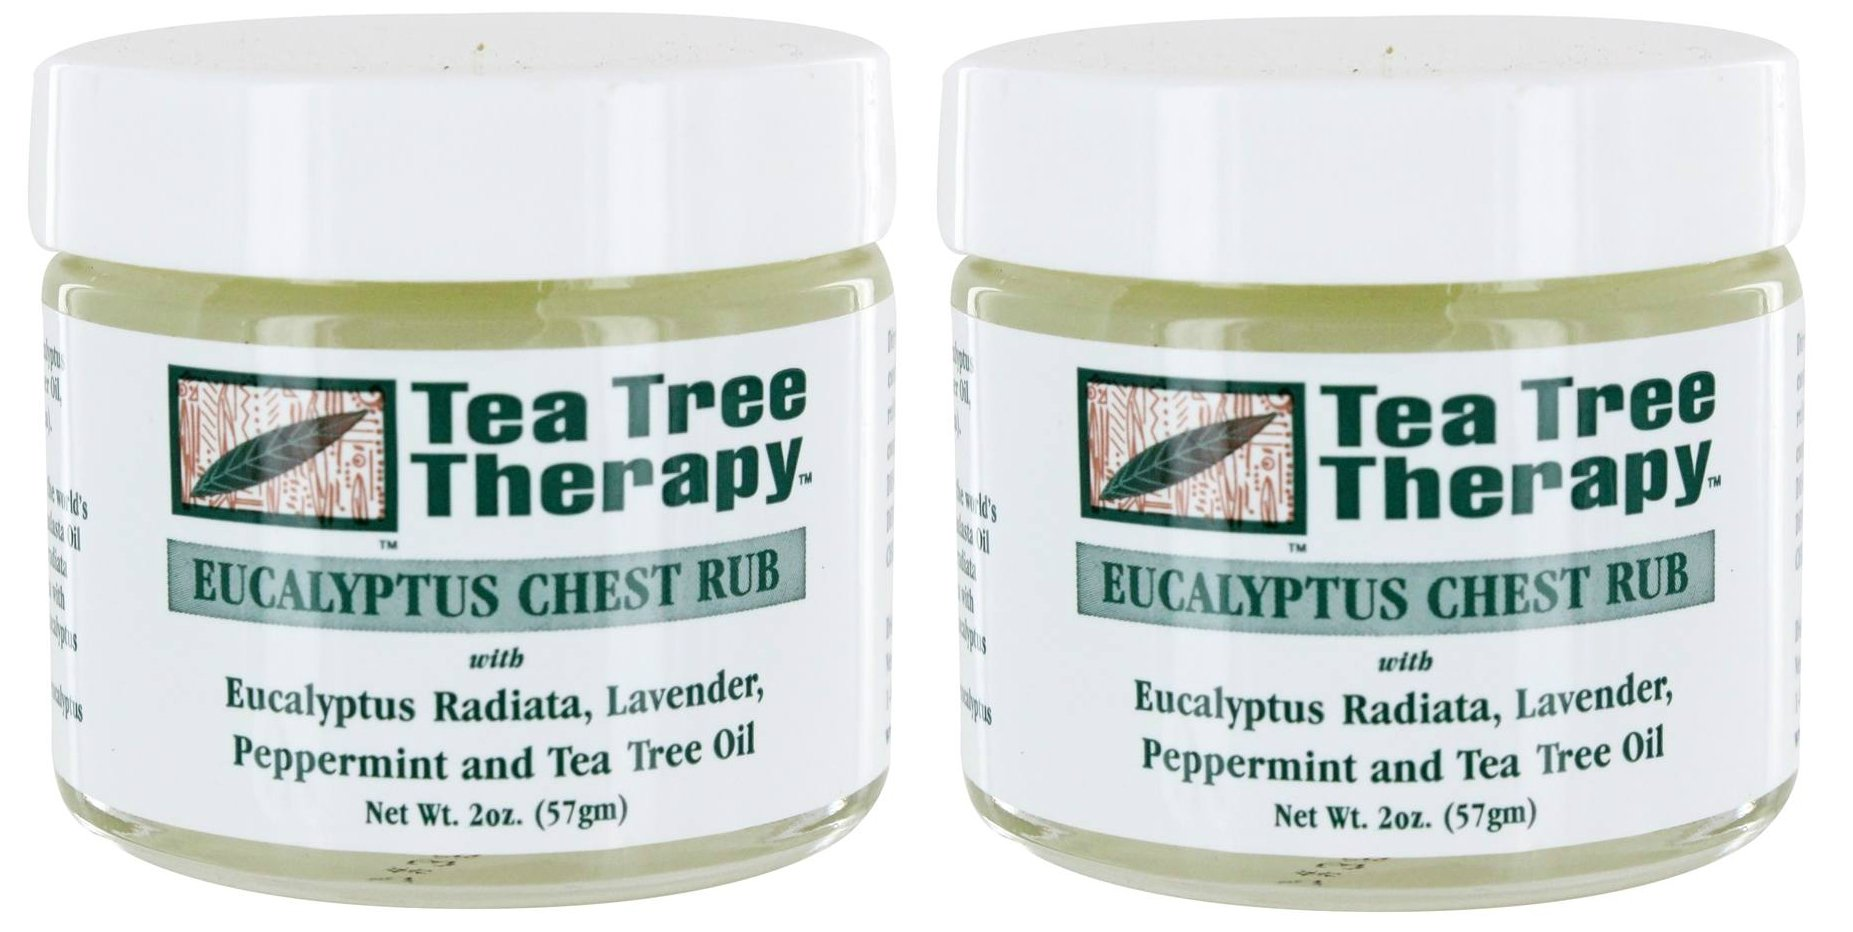 Tea Tree Therapy Eucalyptus Chest Rub (Pack of 2) with Tea Tree Oil, Beeswax, and Eucalyptus Oil, 2 oz. by Tea Tree Therapy